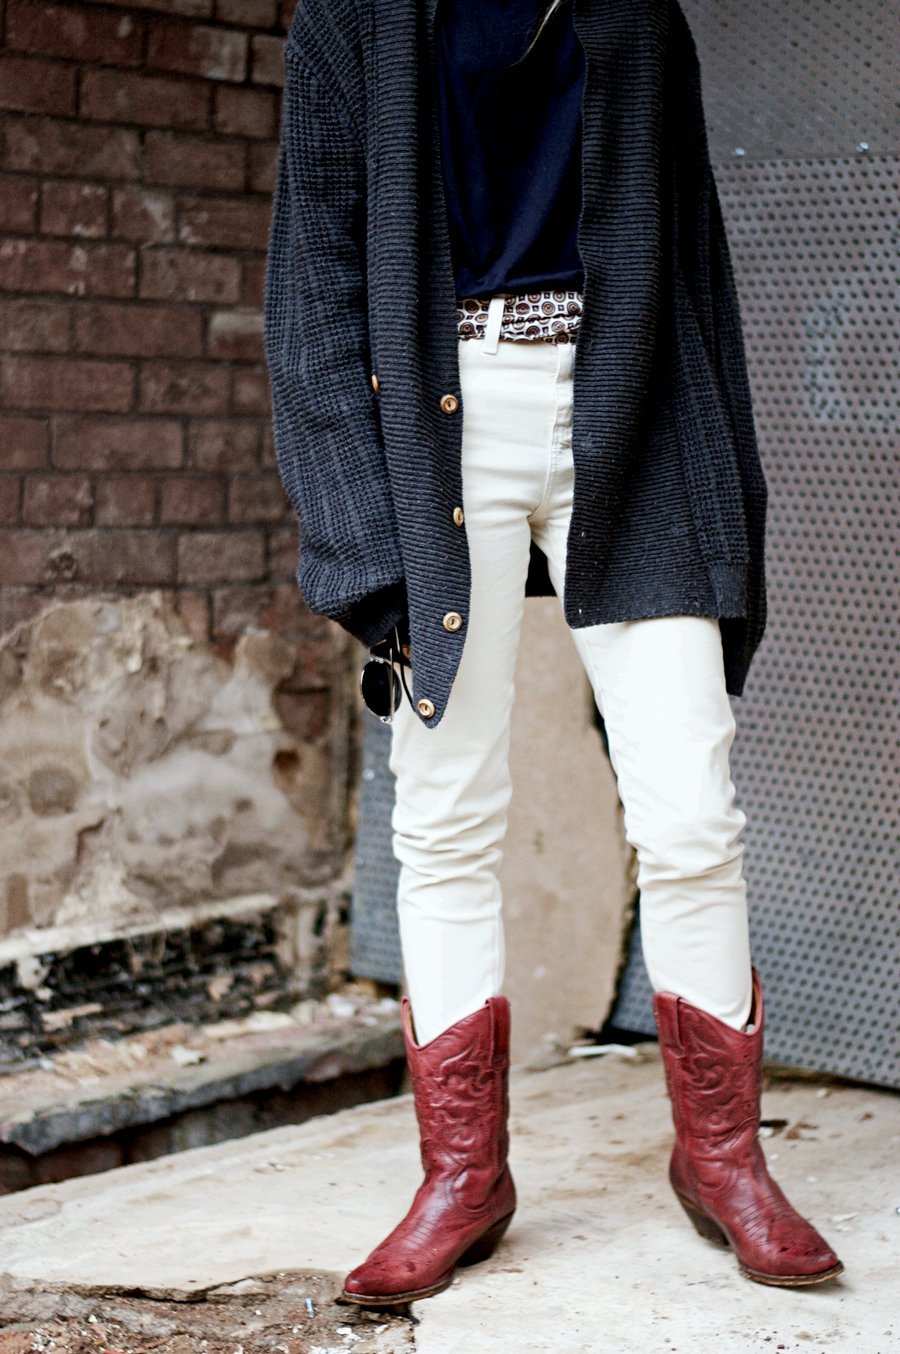 The Outfit: Old Cowboy Boots